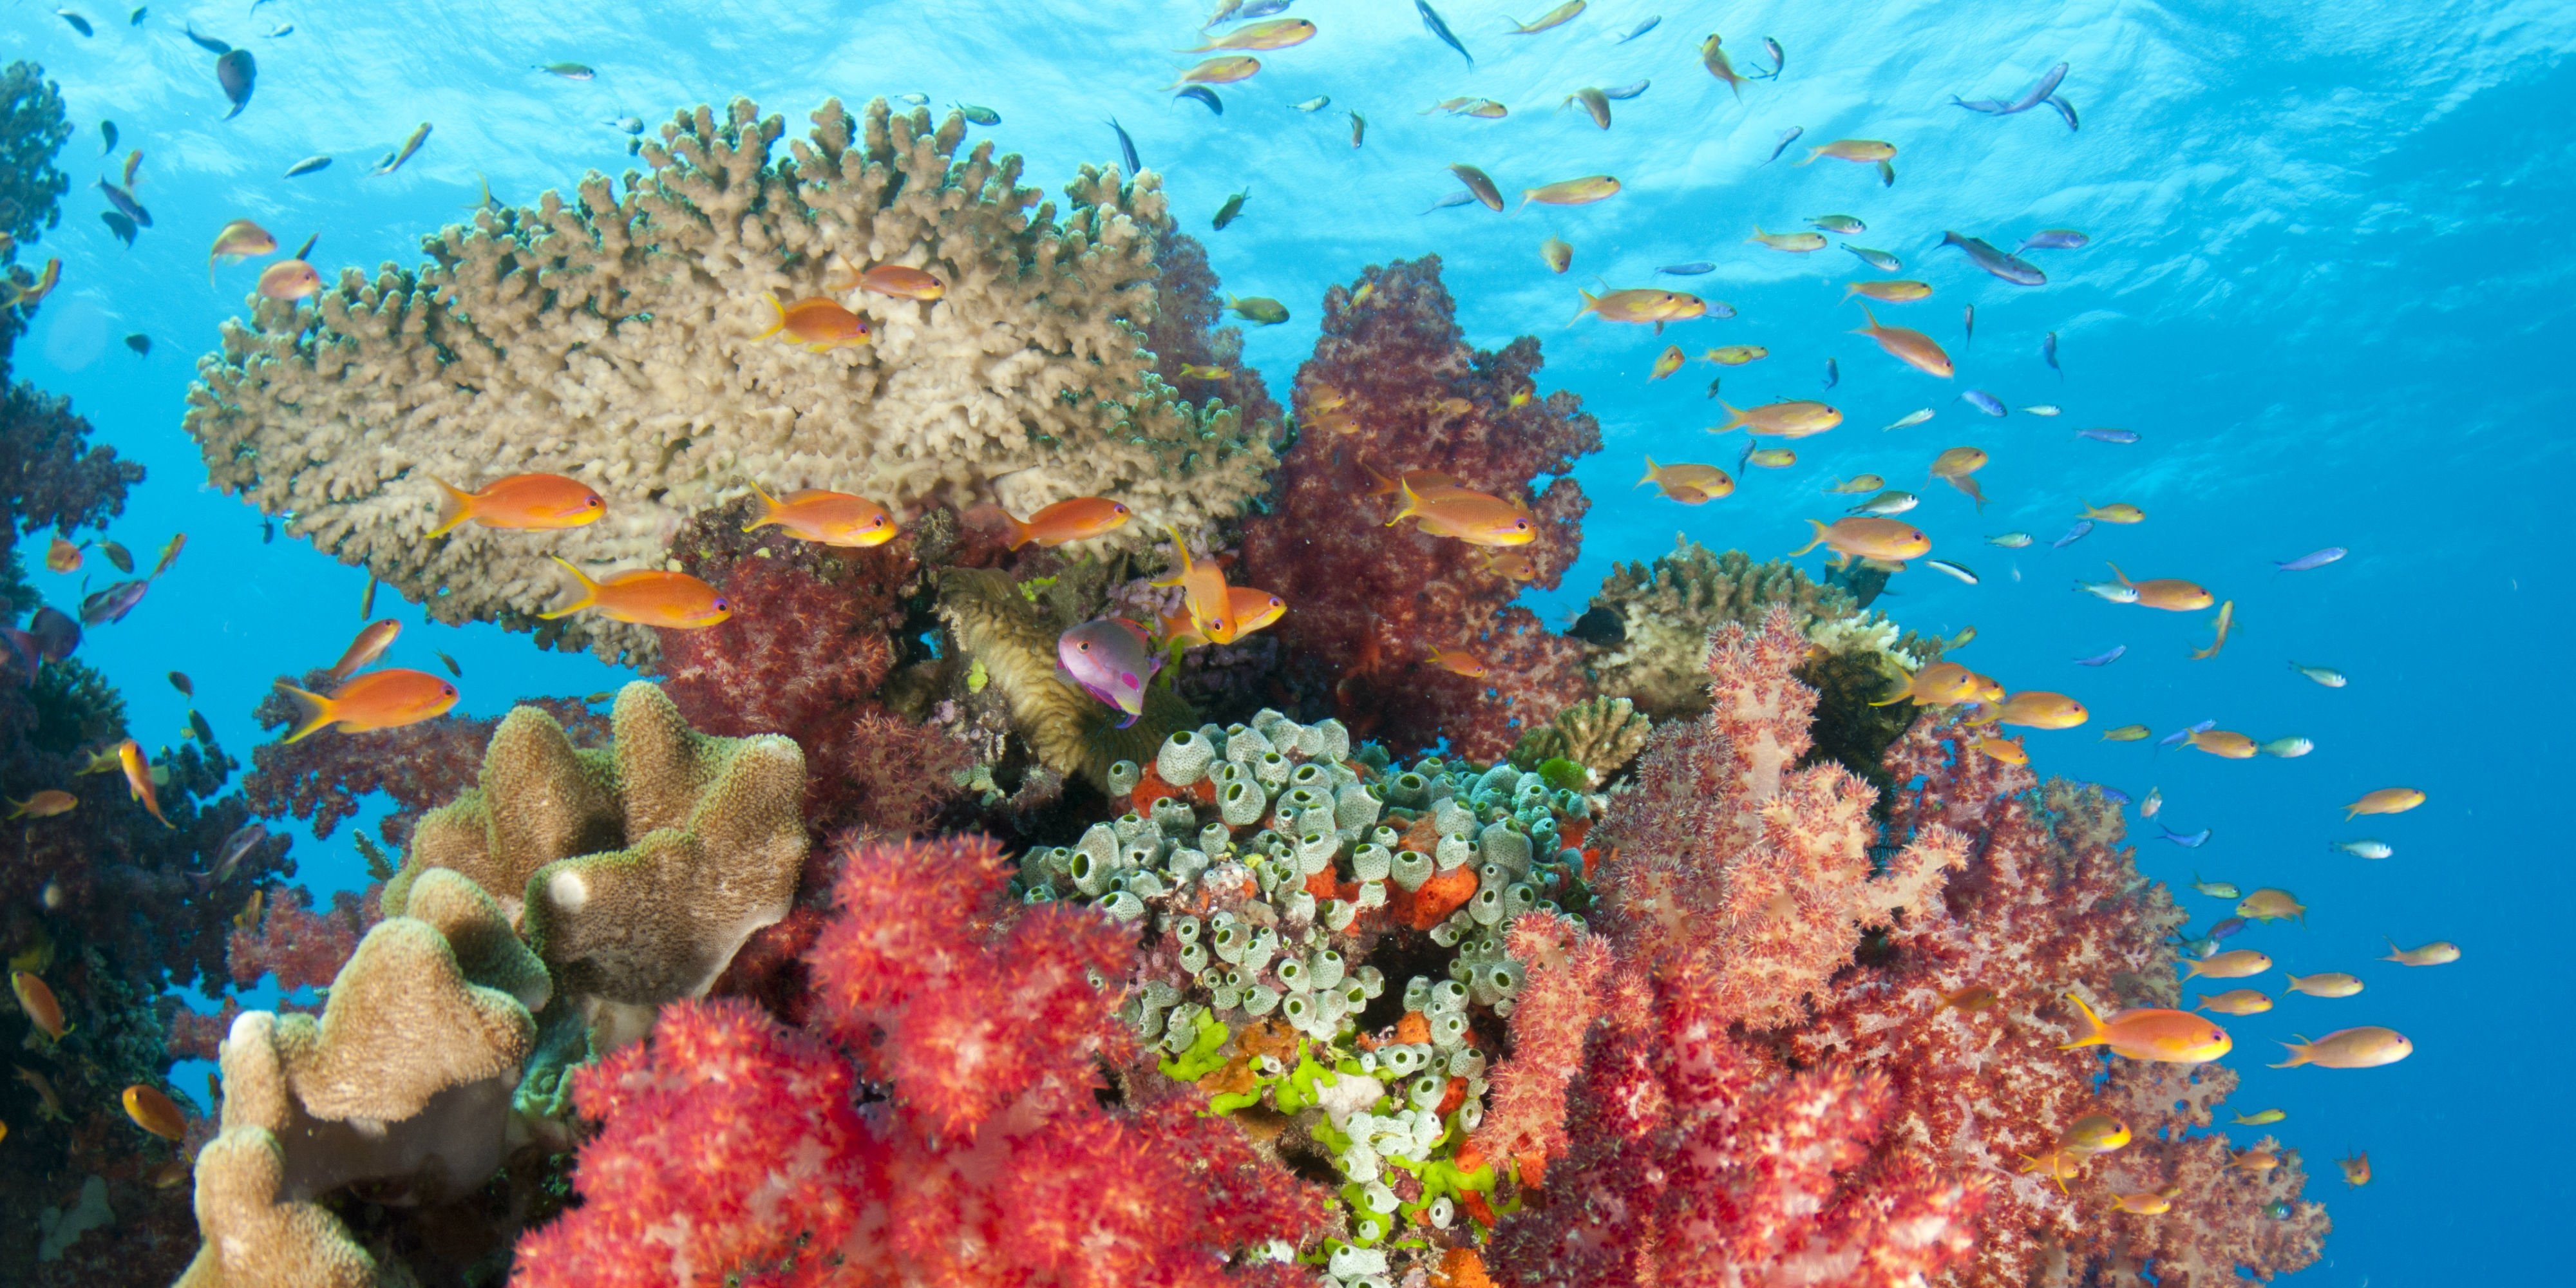 A coral reef in Fiji supports a diverse marine ecosystem. Small steps to help save the oceans will help preserve these fragile marine environments.